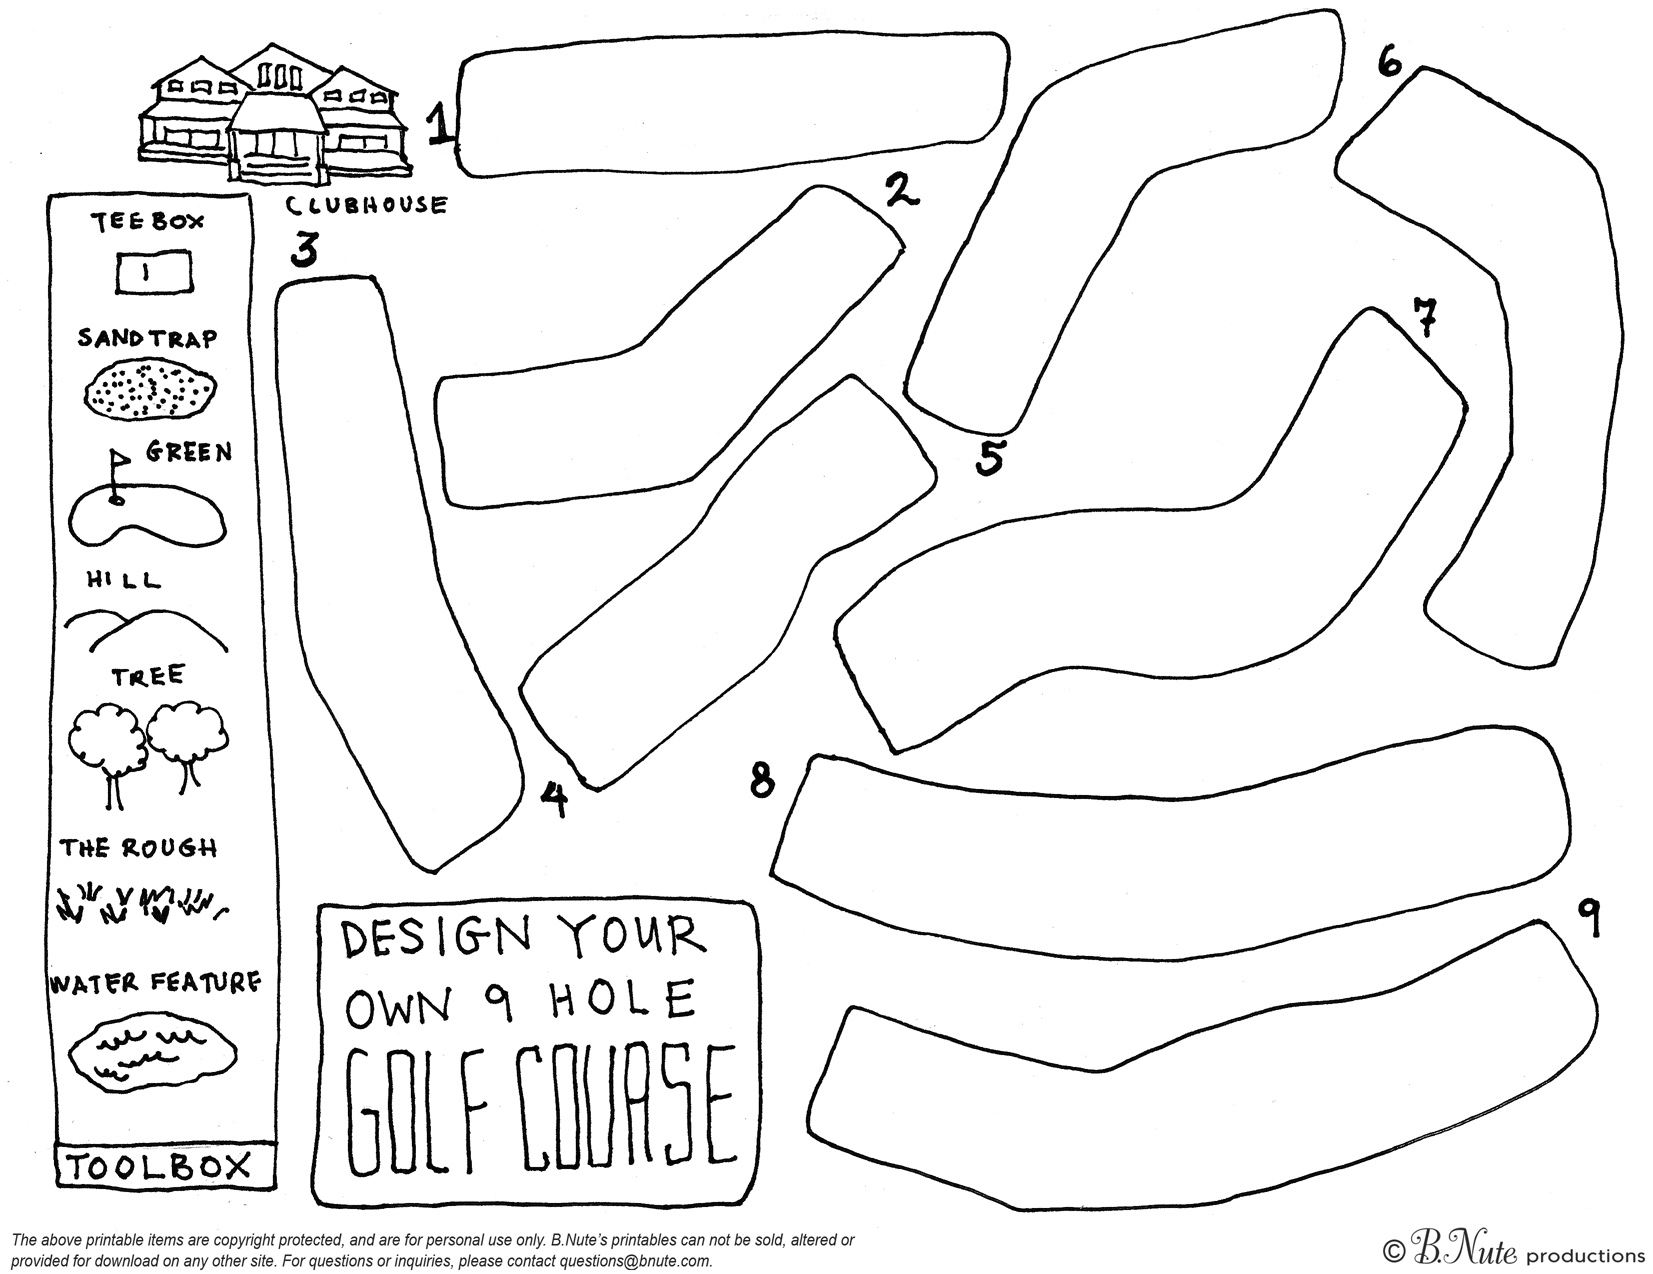 bnute productions free printable design your own 9 hole golf course